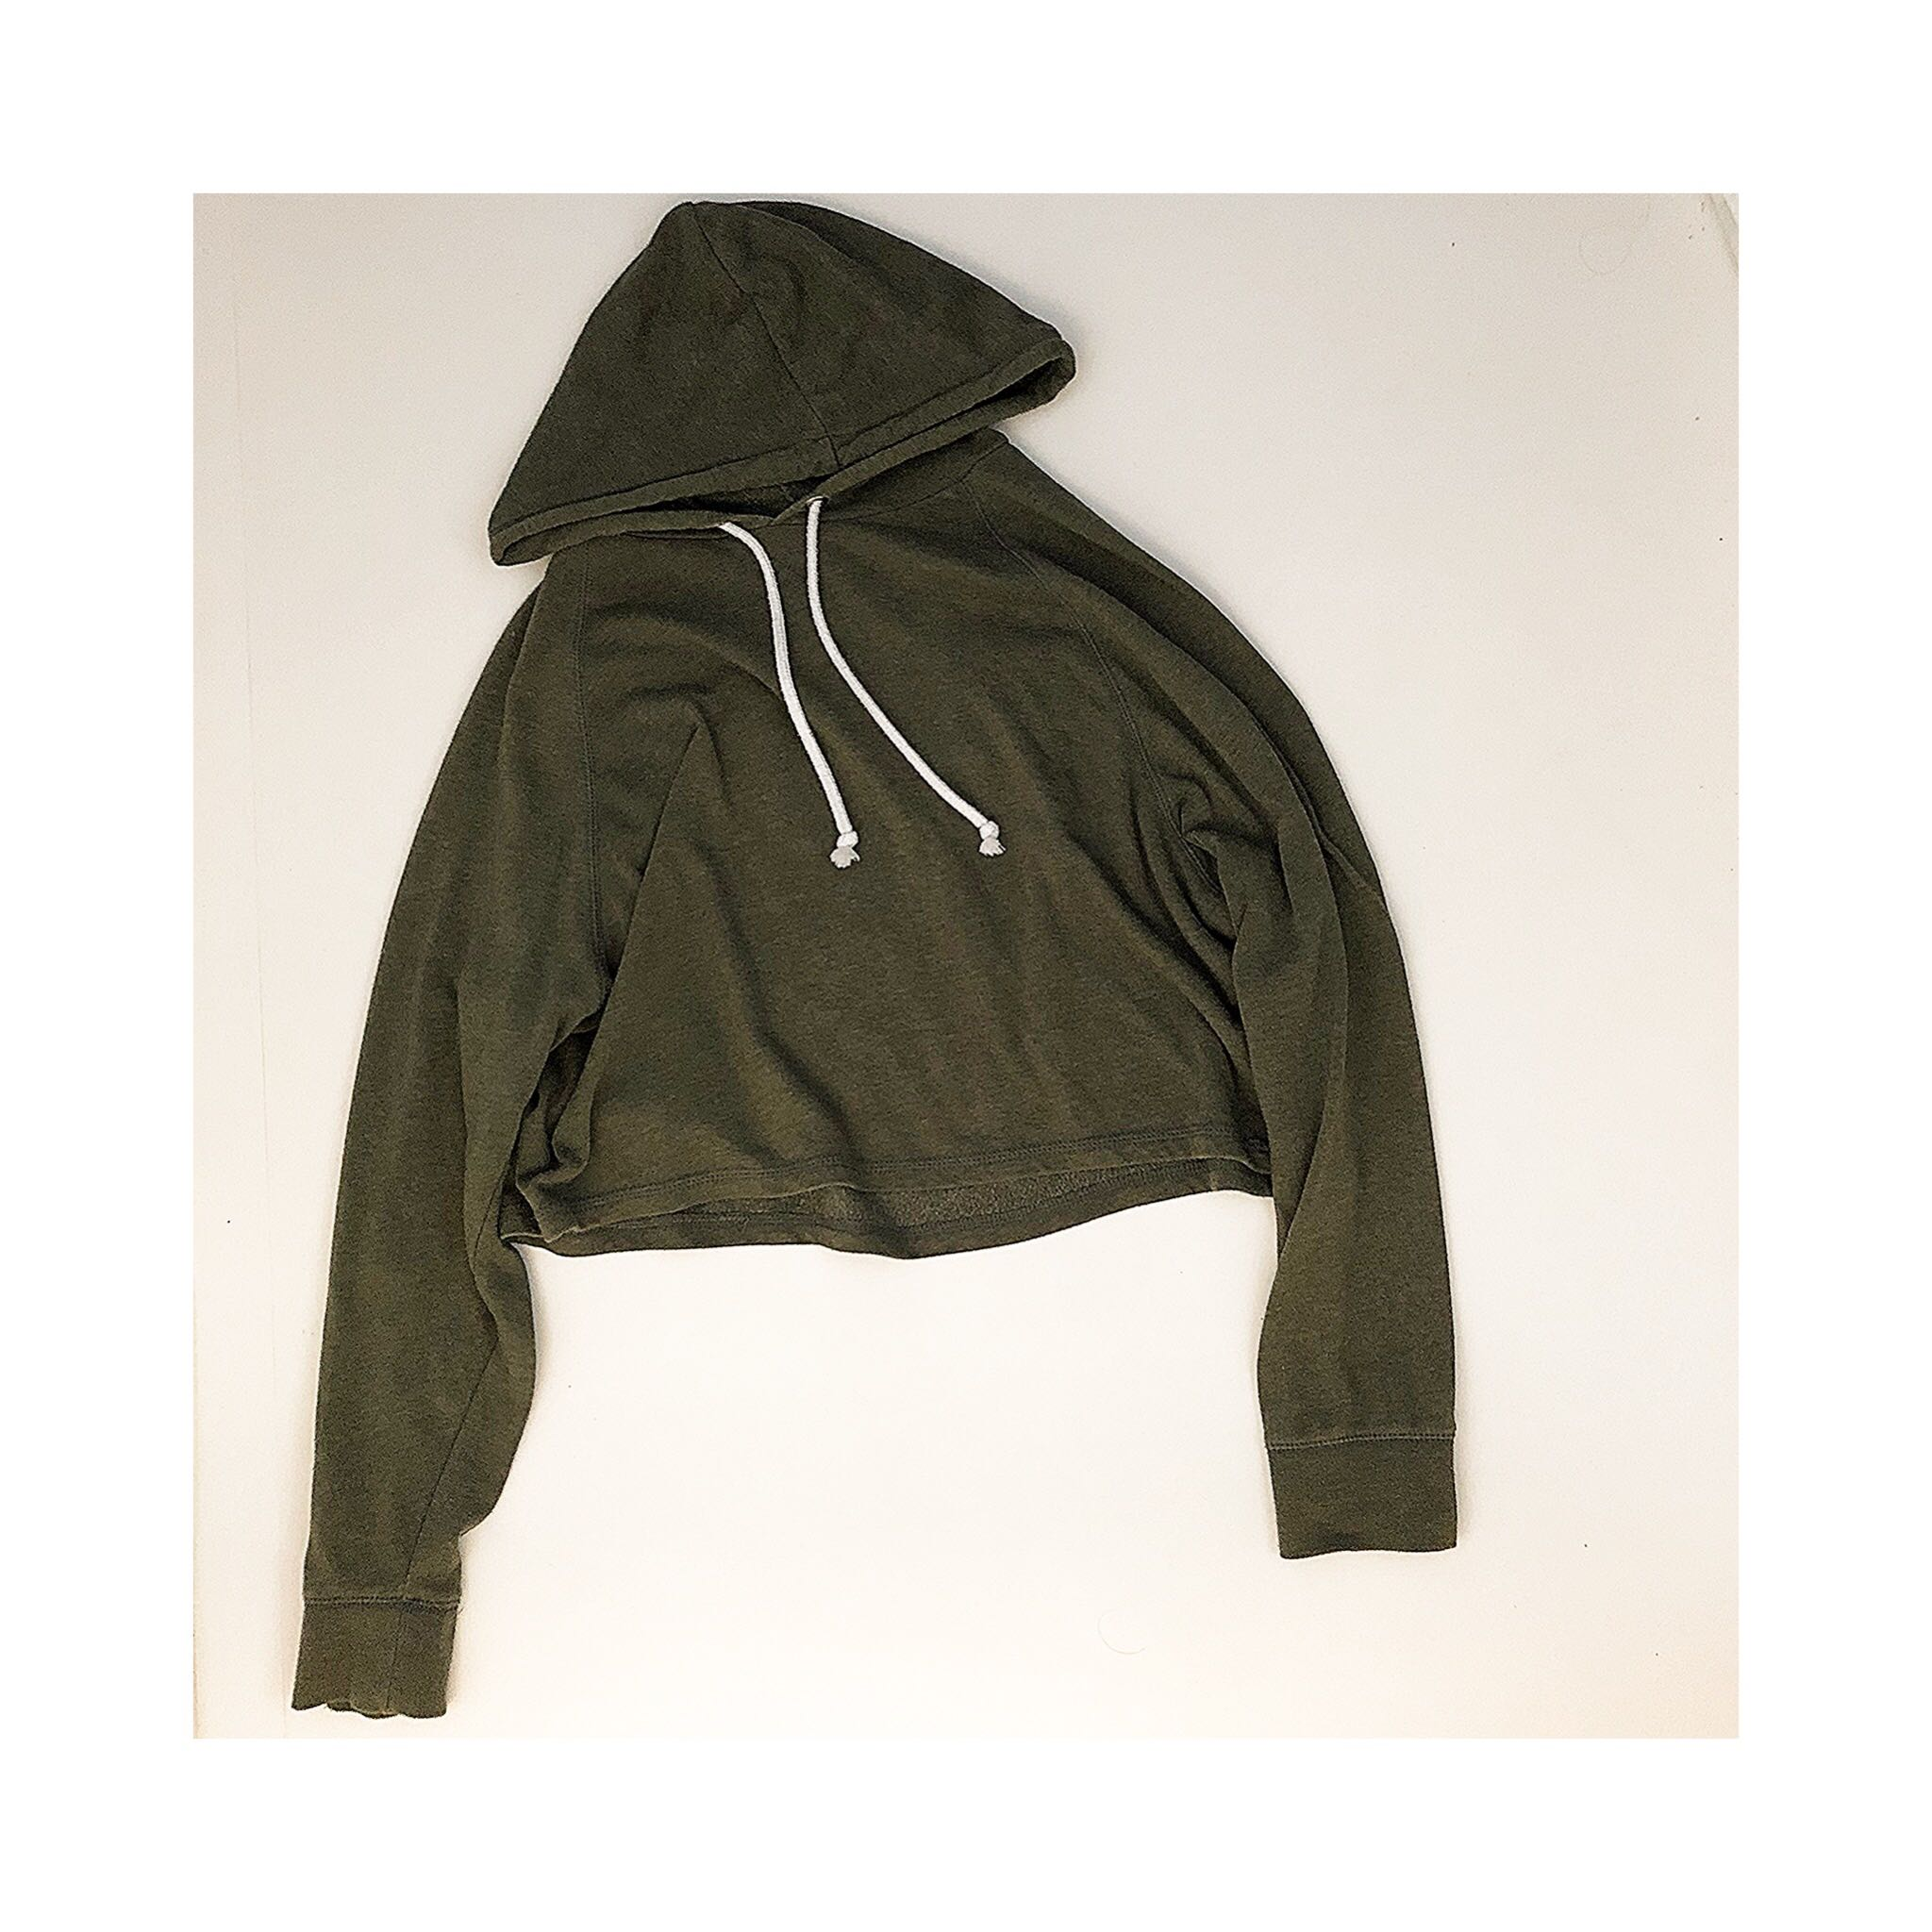 2c2f5d85718 H&M ARMY GREEN CROPPED HOODED TOP, Women's Fashion, Clothes ...